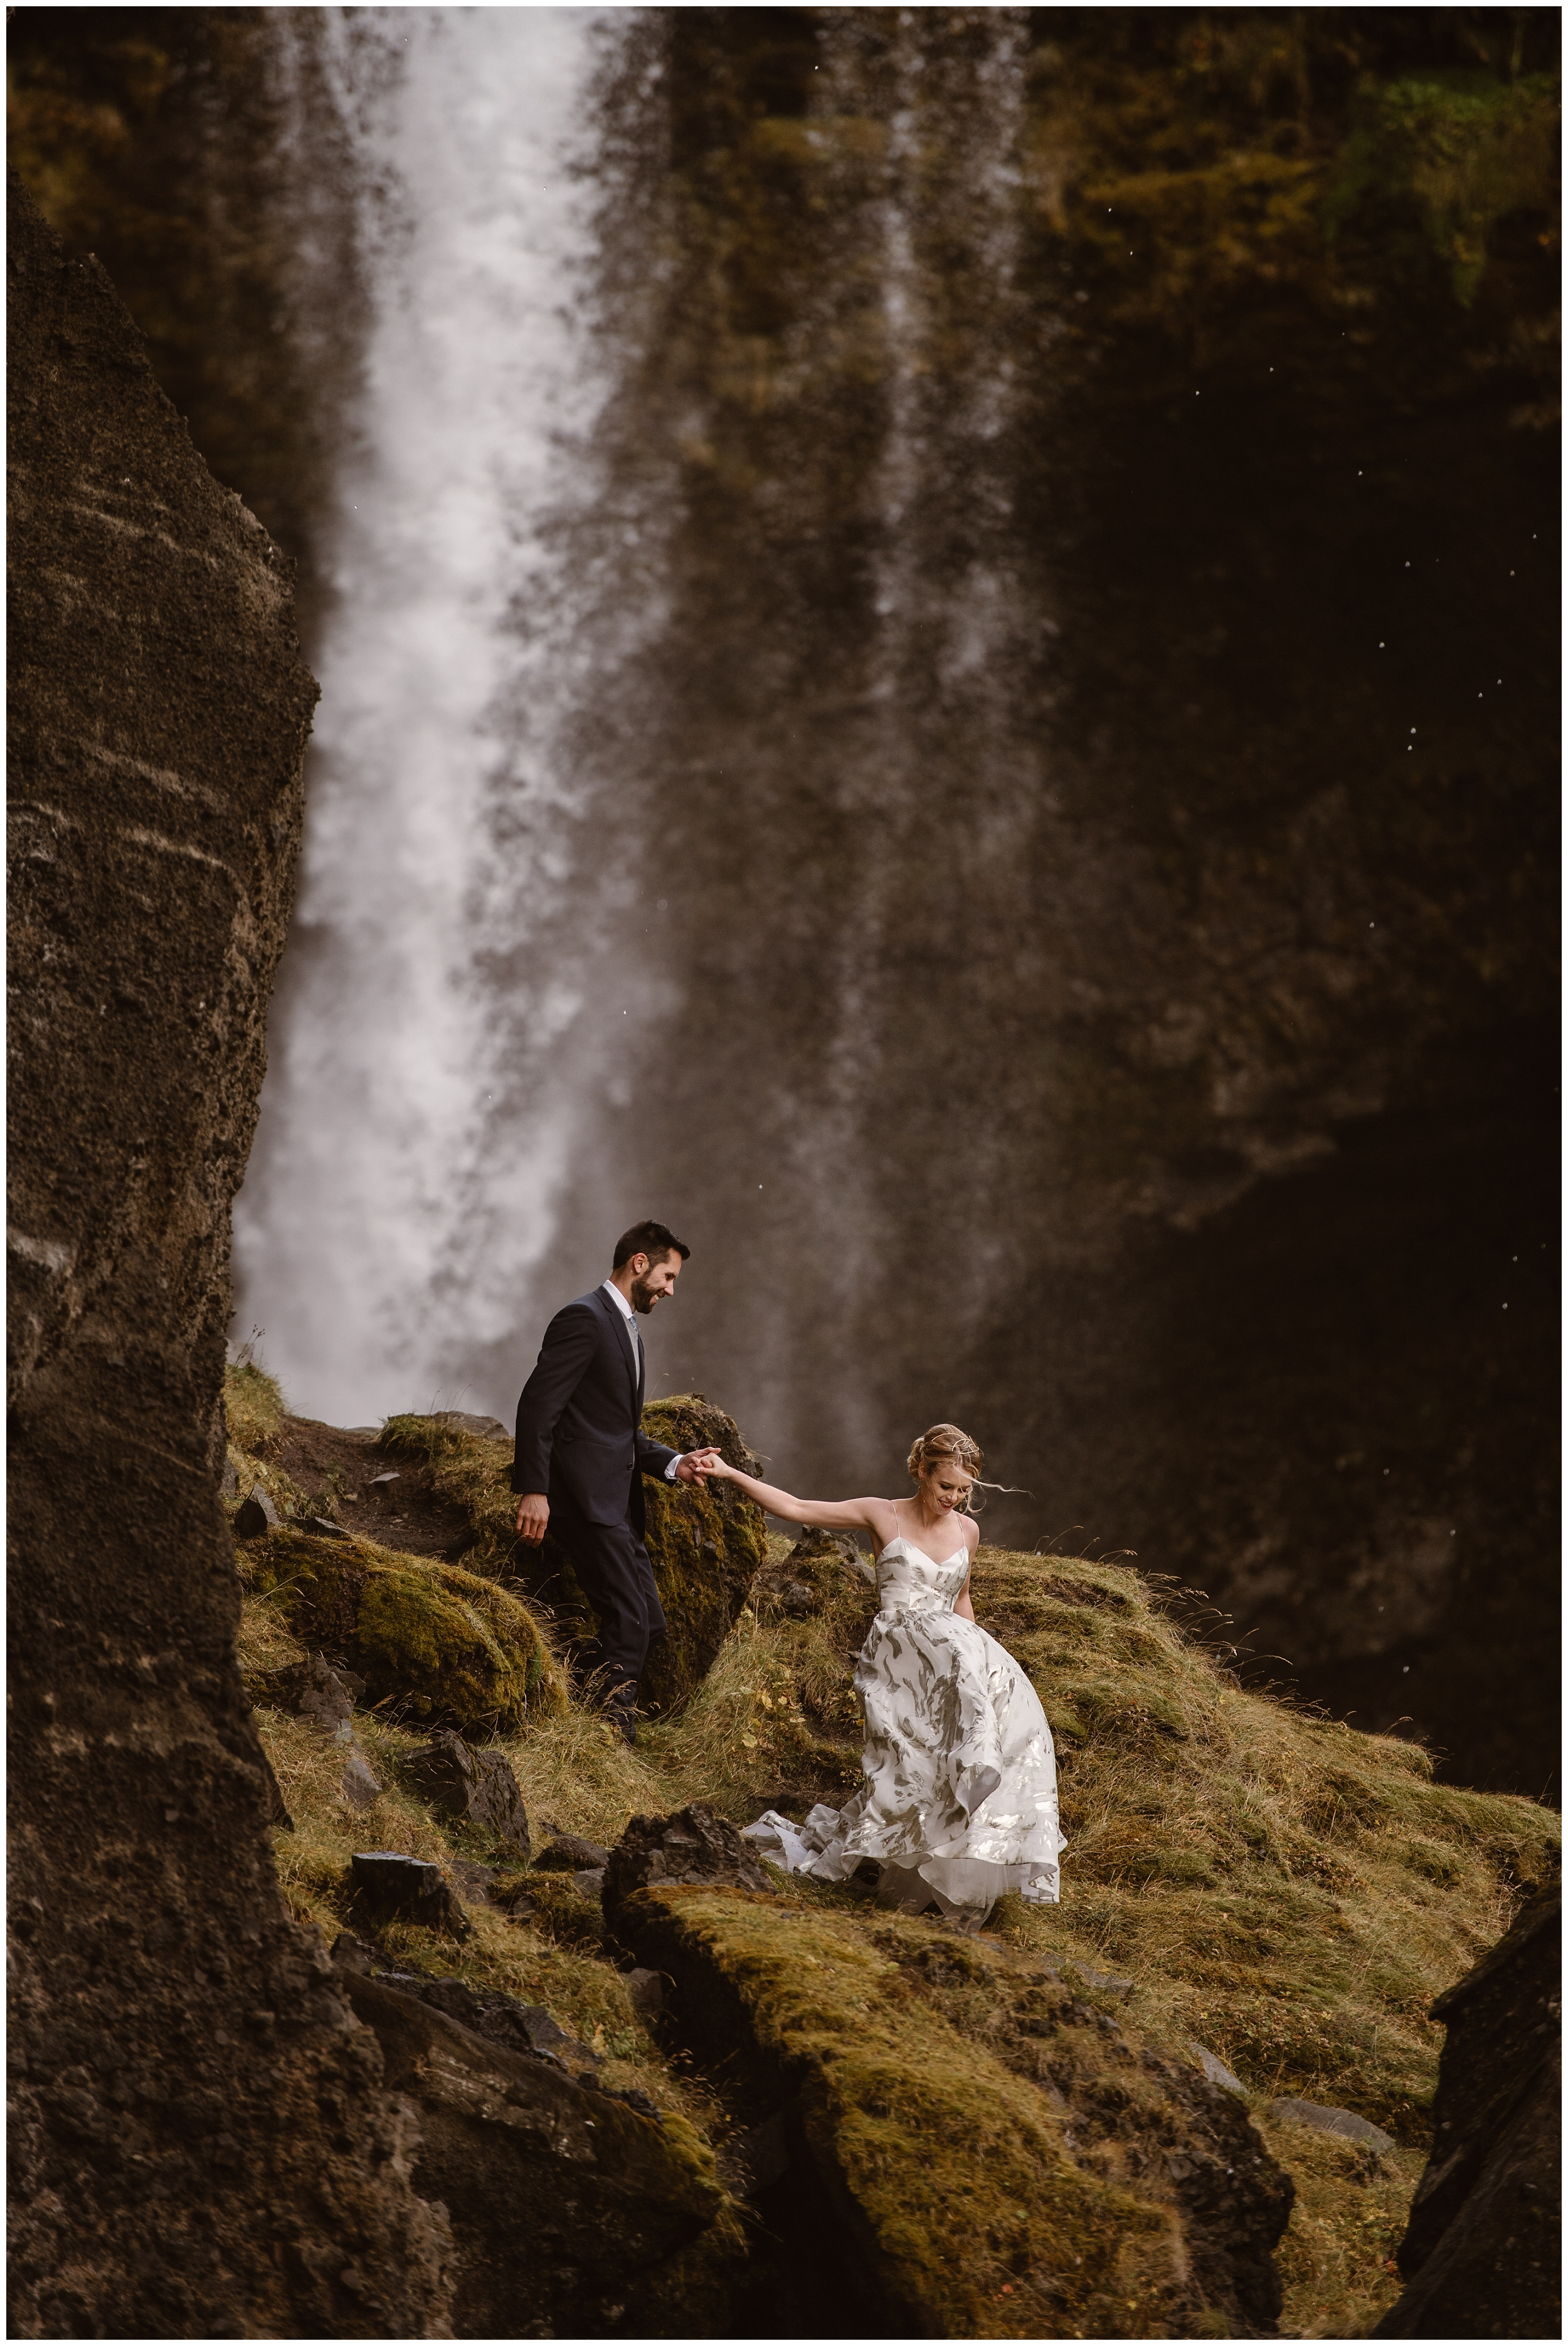 A brie leads her groom down a mossy path as a rushing waterfall powers forcefully behind them. Small wedding ideas like these make for the best elopement locations. Why elope, you might ask? You get to have your elopement wedding in a spot like this!